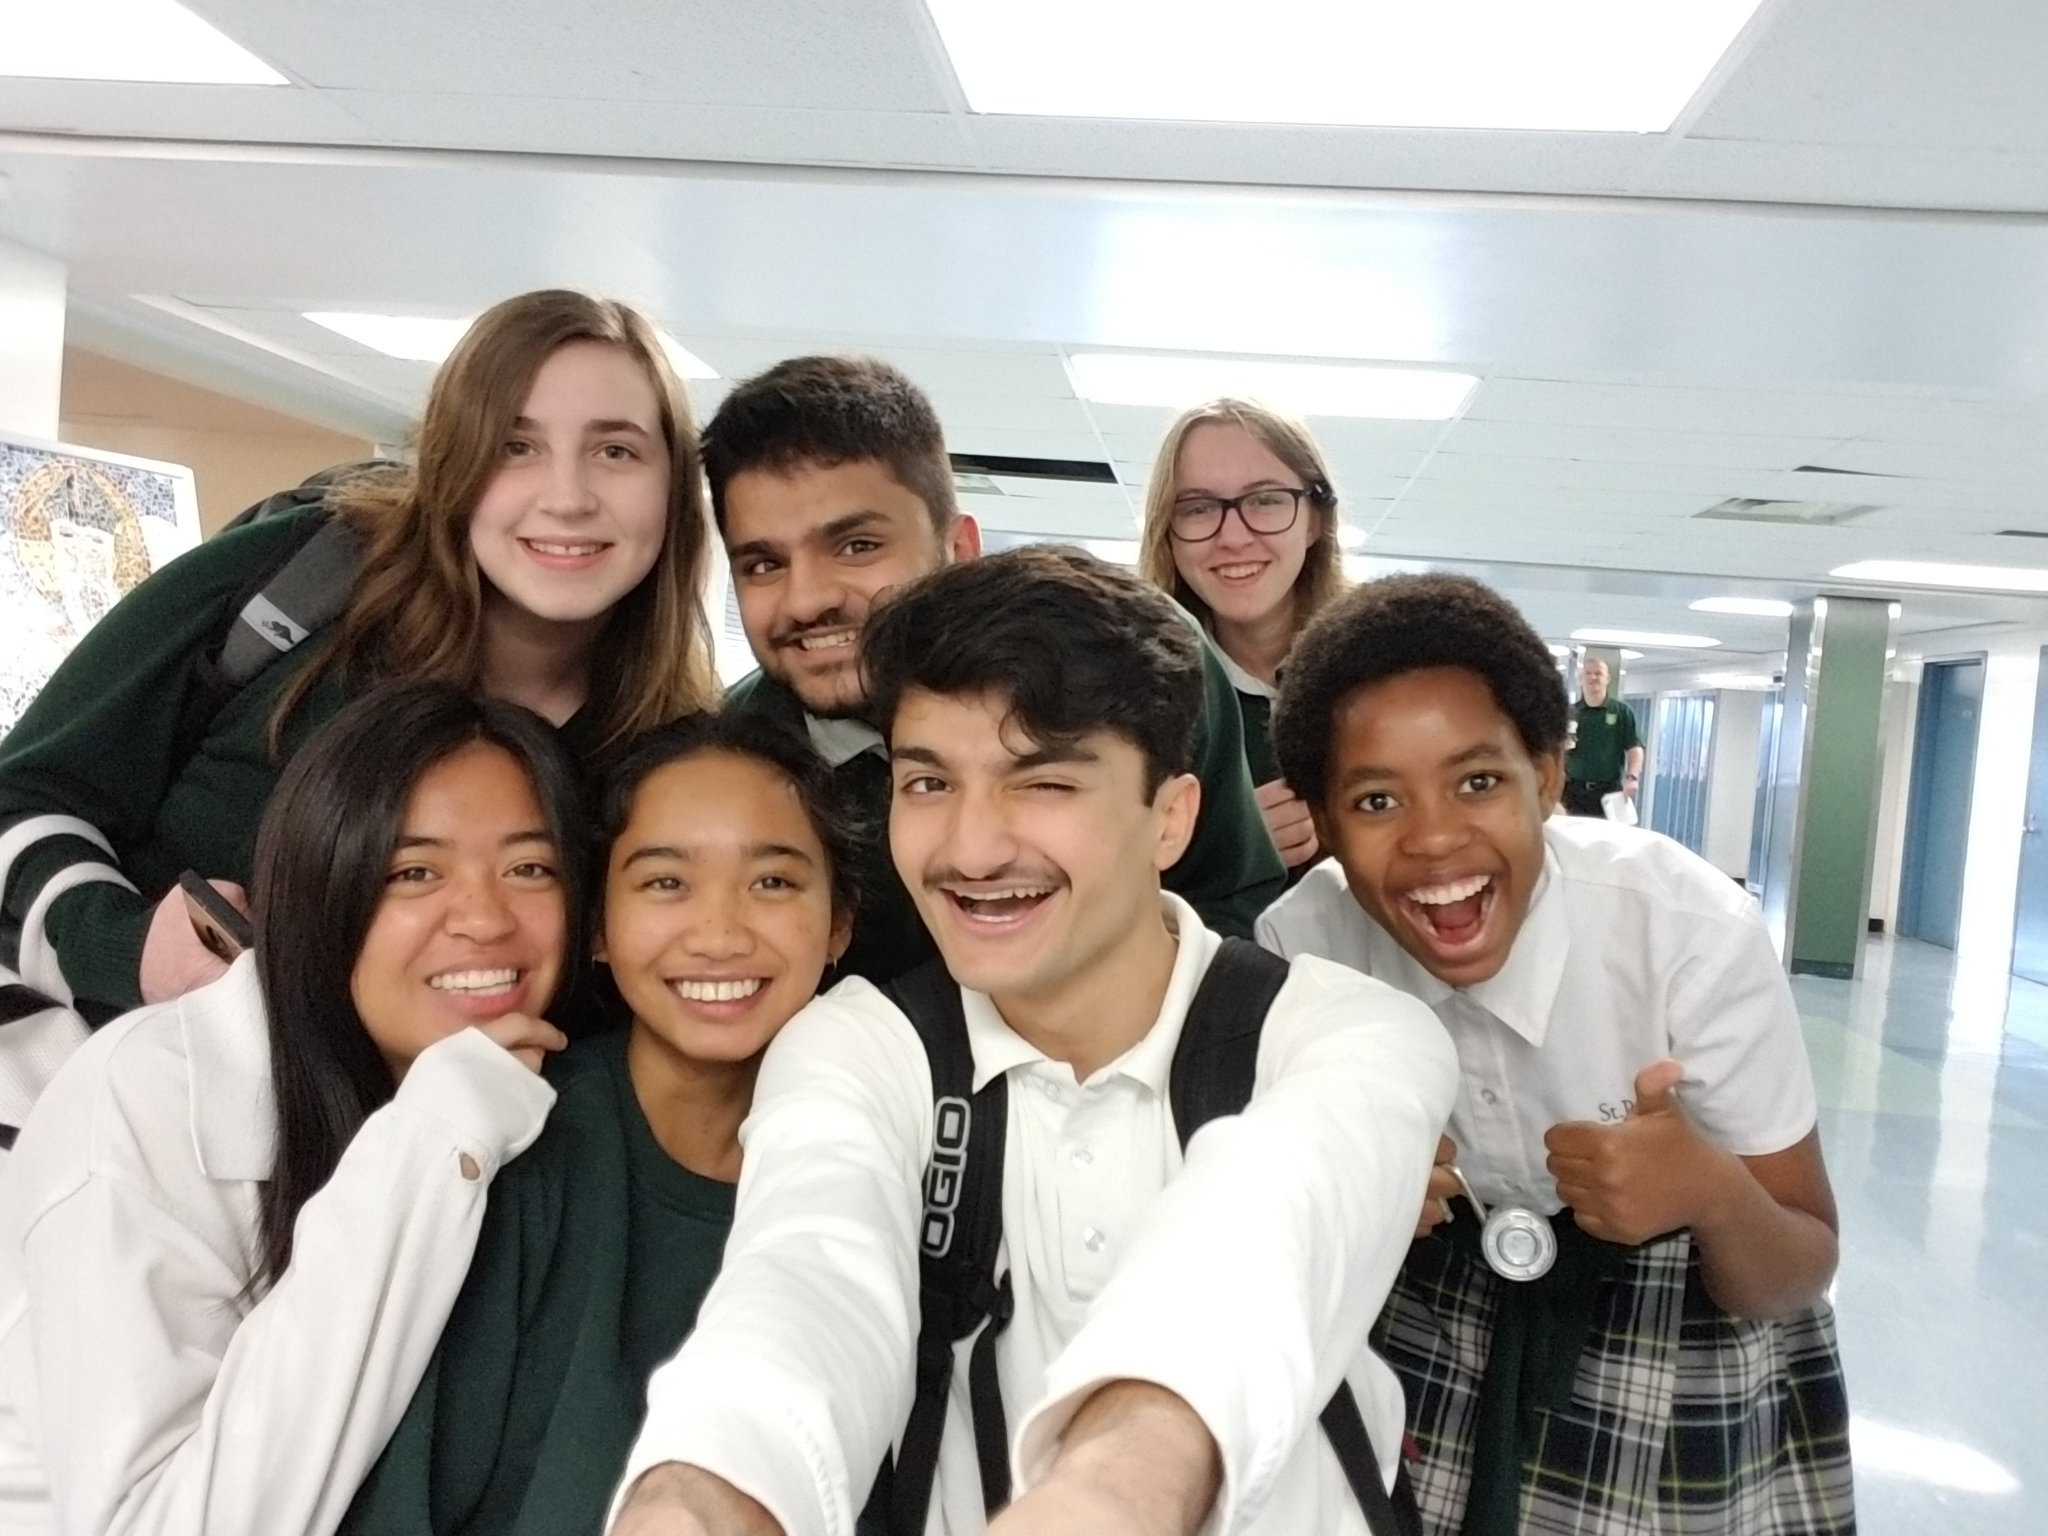 Photo of group of high school students in uniforms taking a selfie